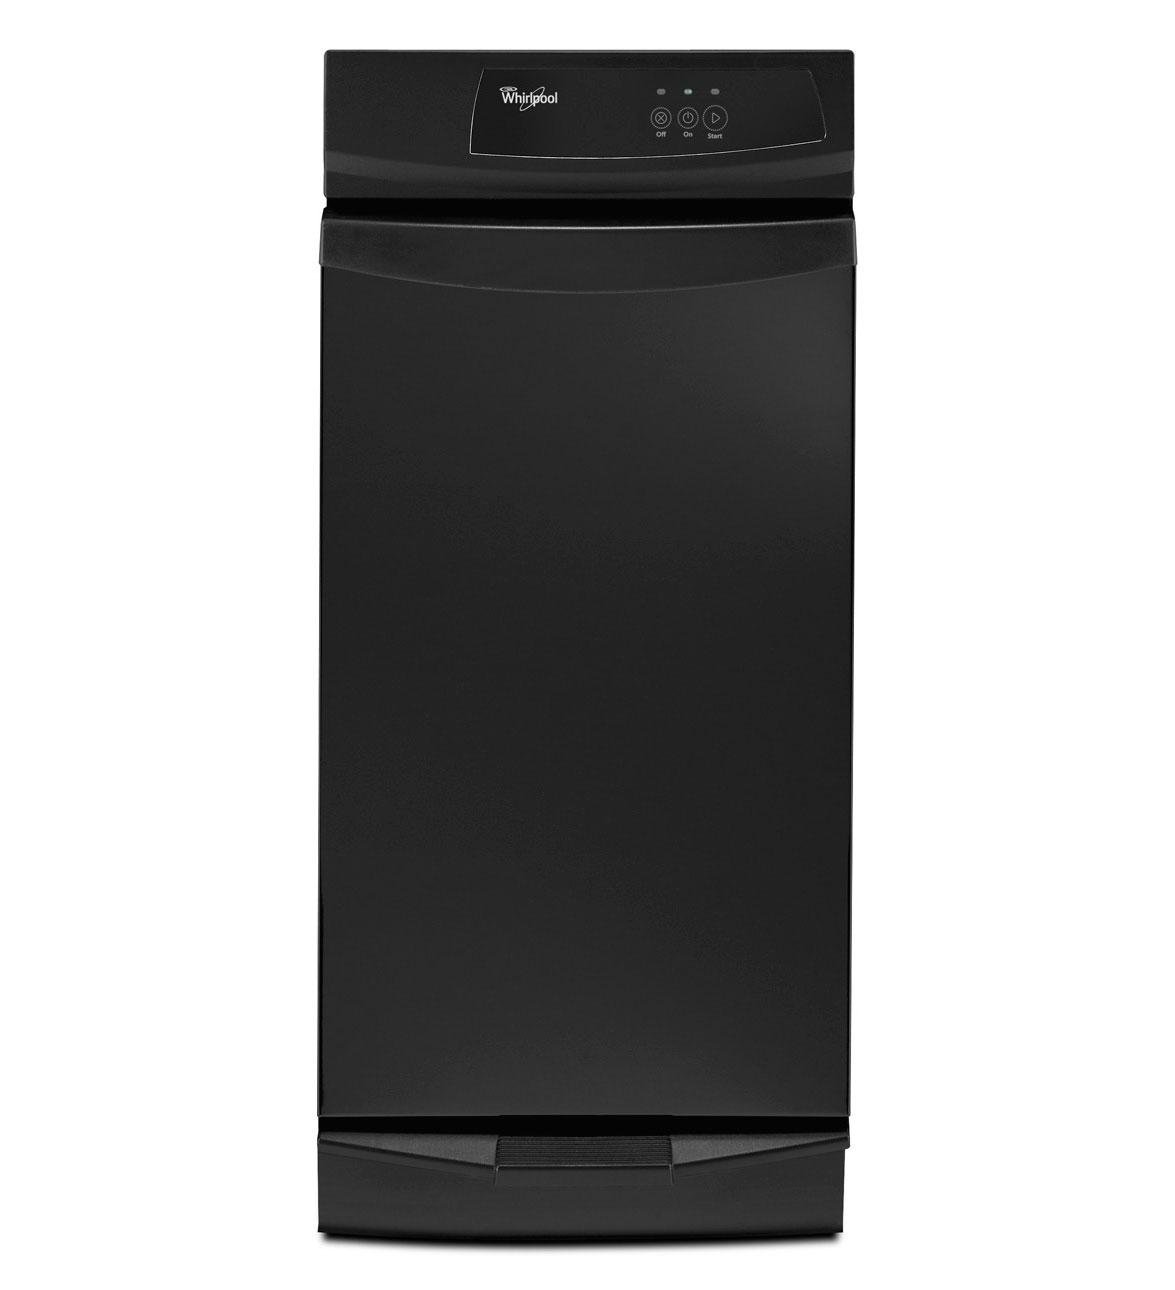 Whirlpool GC900QPPB 15'' Black Built-In Full Console Trash Compactor by Whirlpool